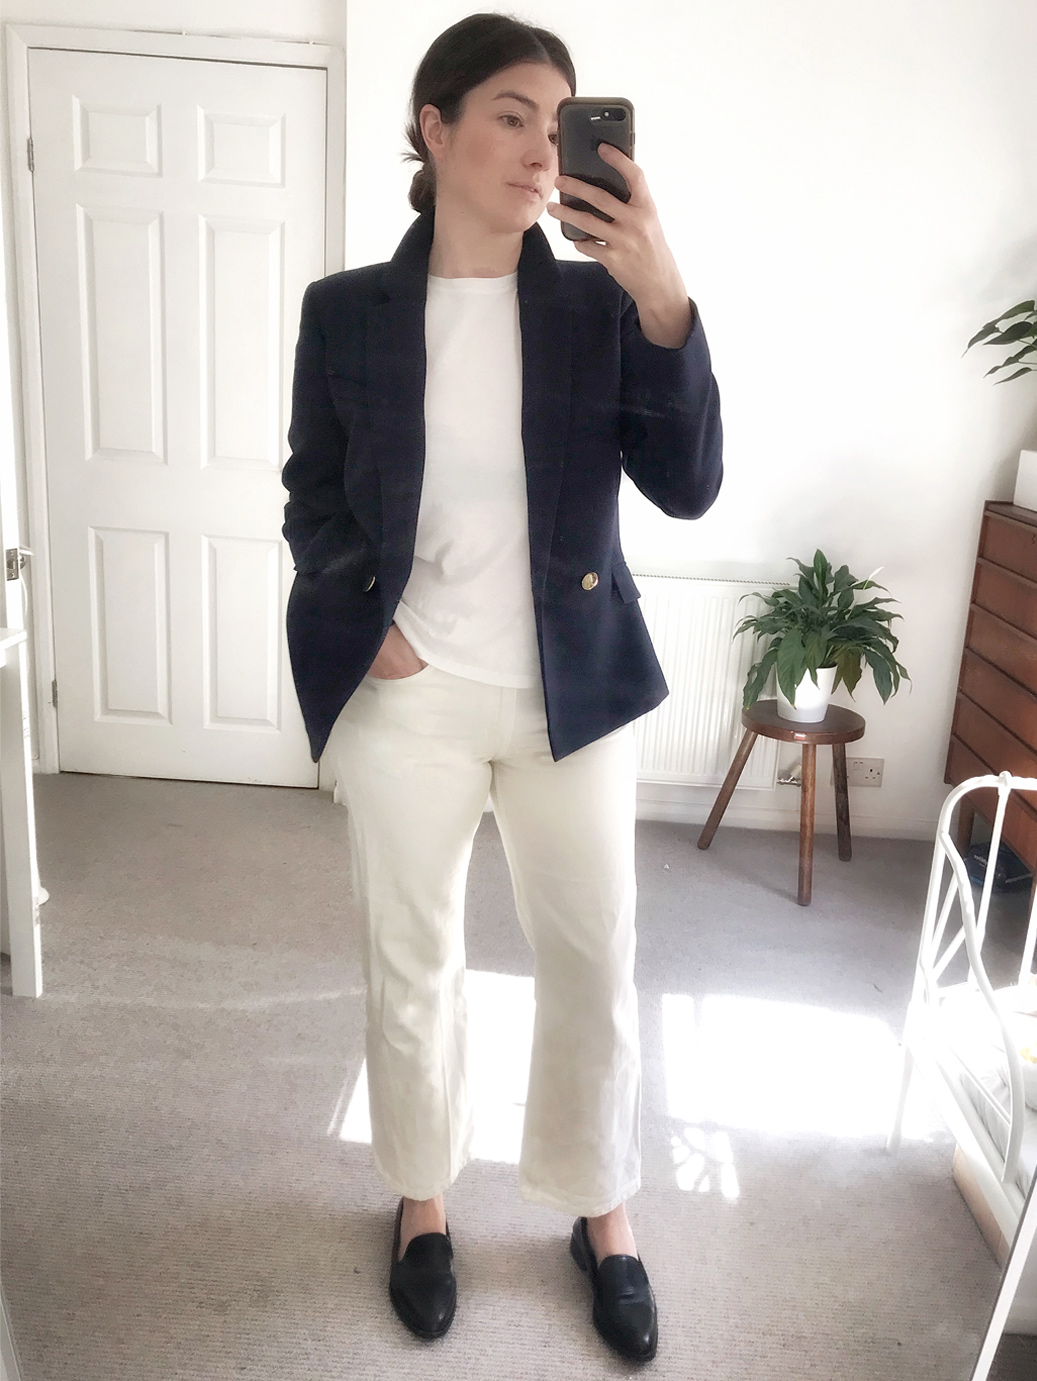 Maddy Moxham. Hobbs Brand Stylist takes a selfie at home